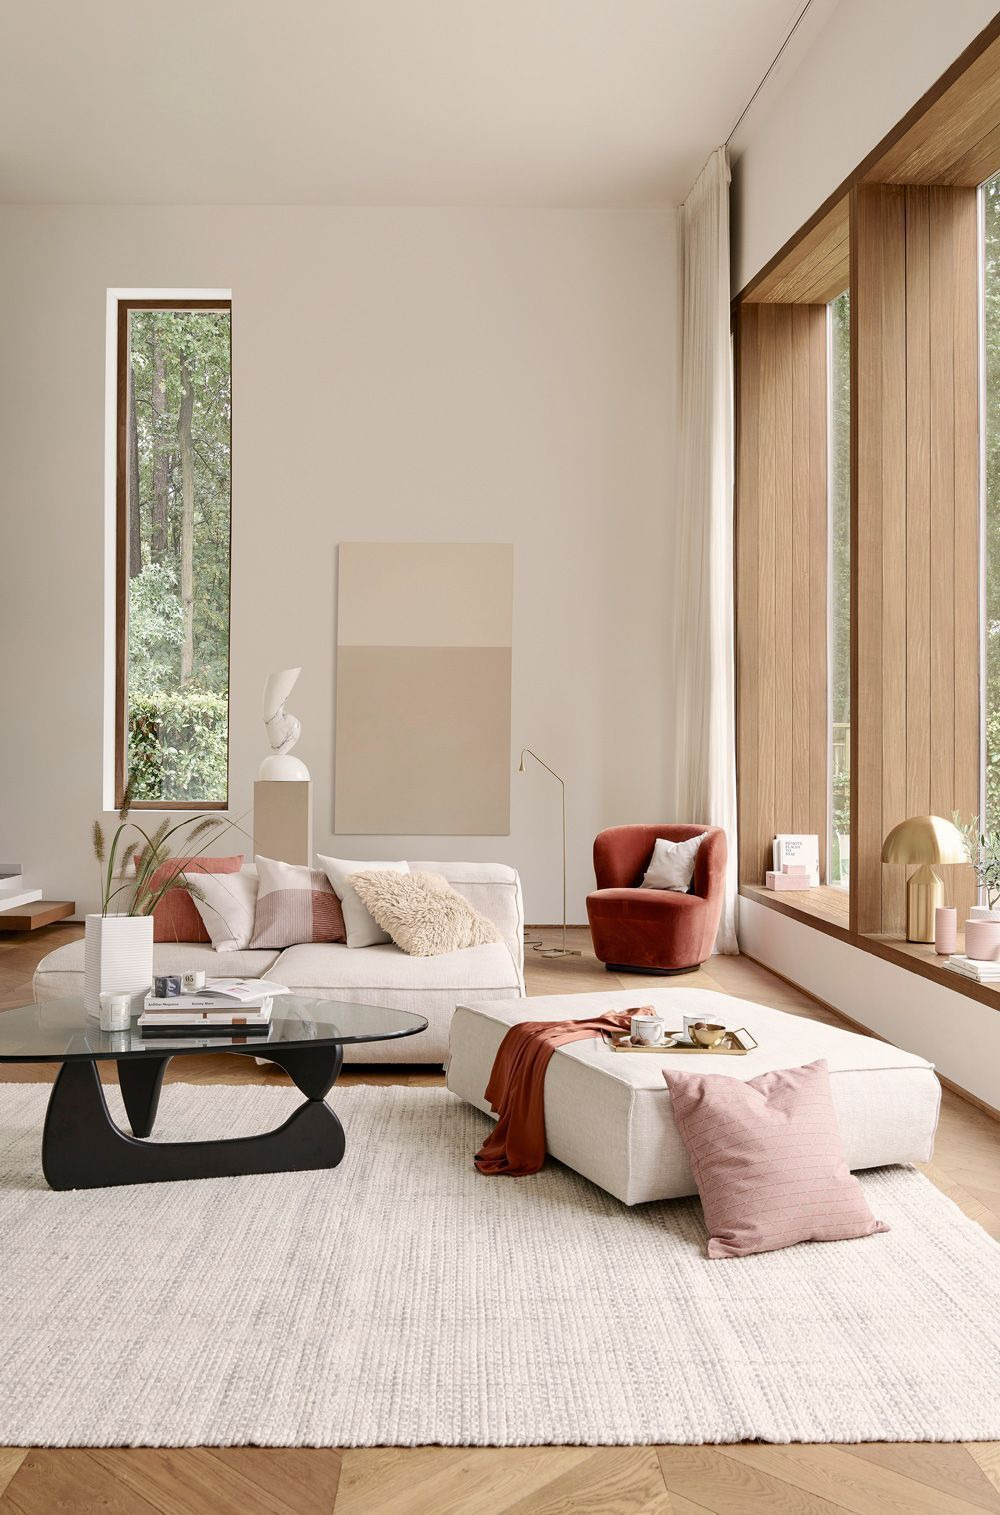 World Famous House Design Inspirational the 5 Best Interior Designers Of the World